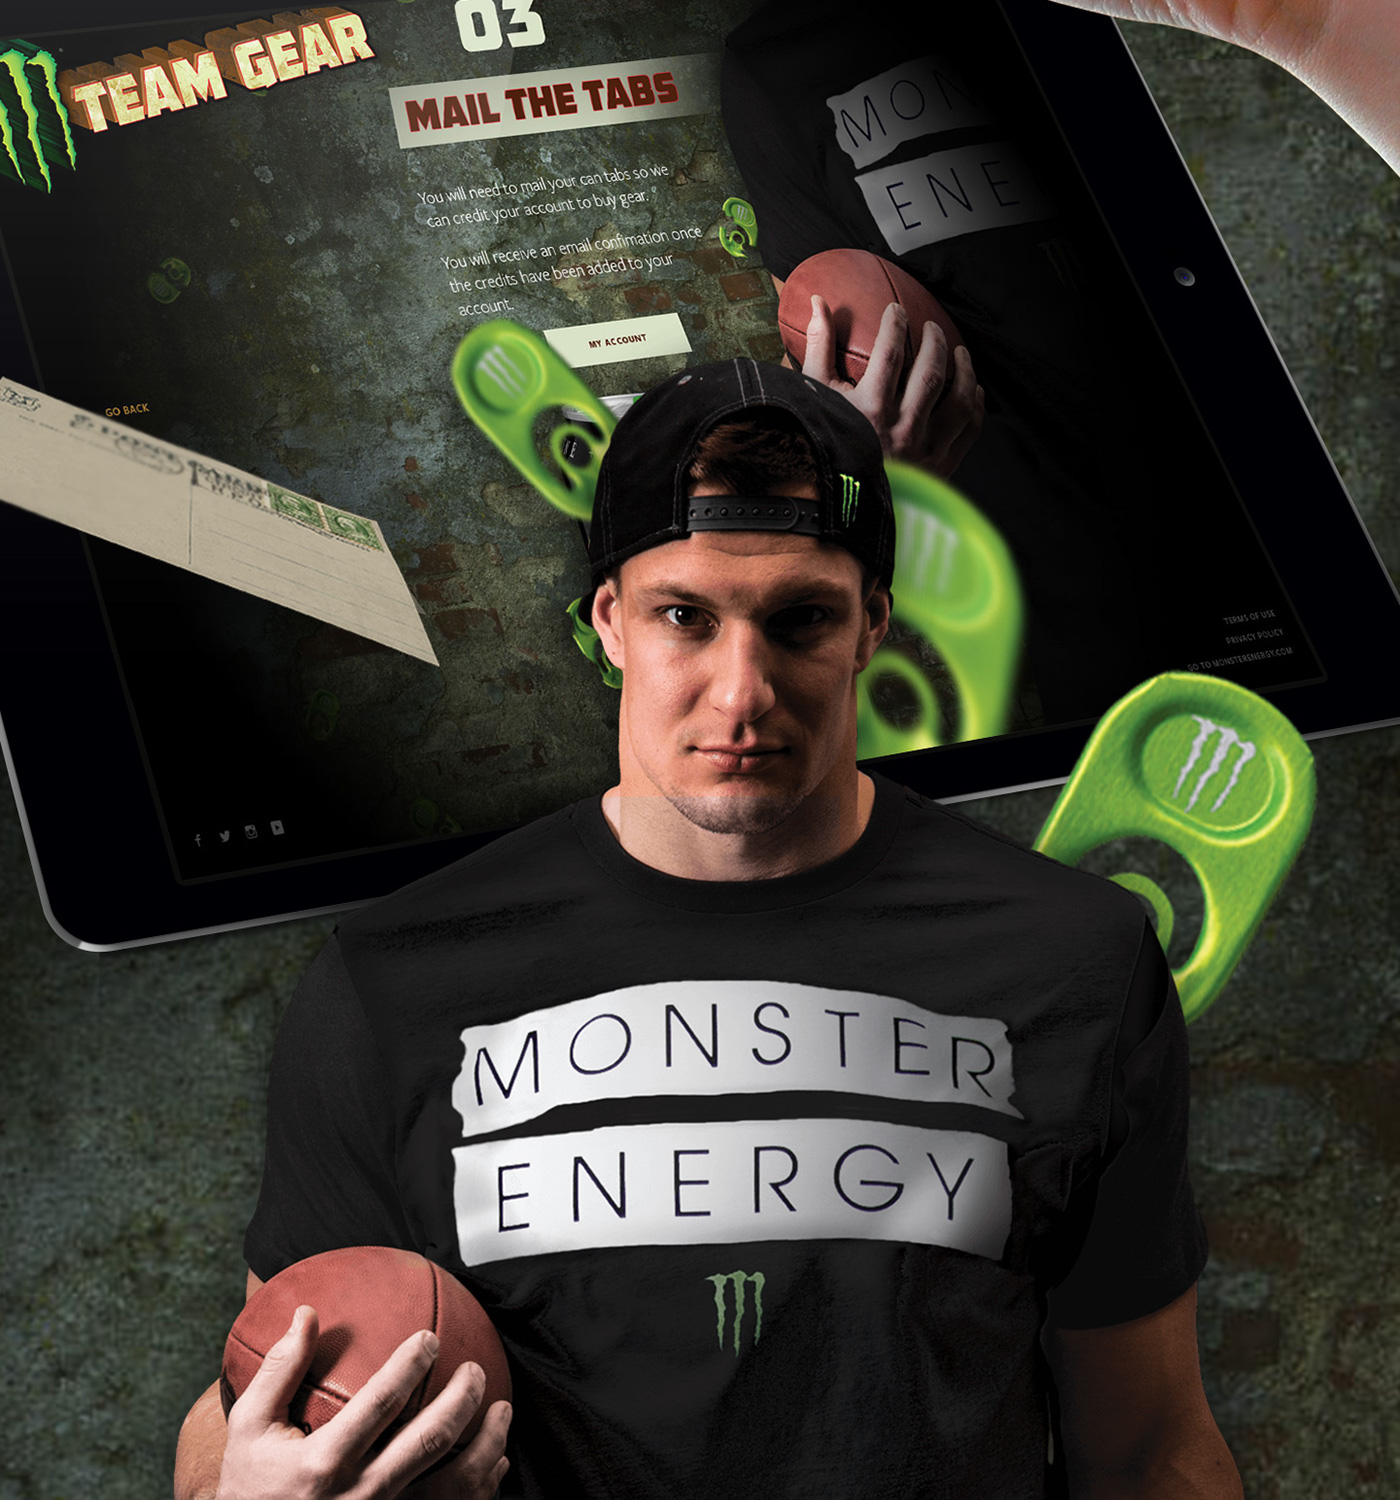 Monster energy prizes for tabs